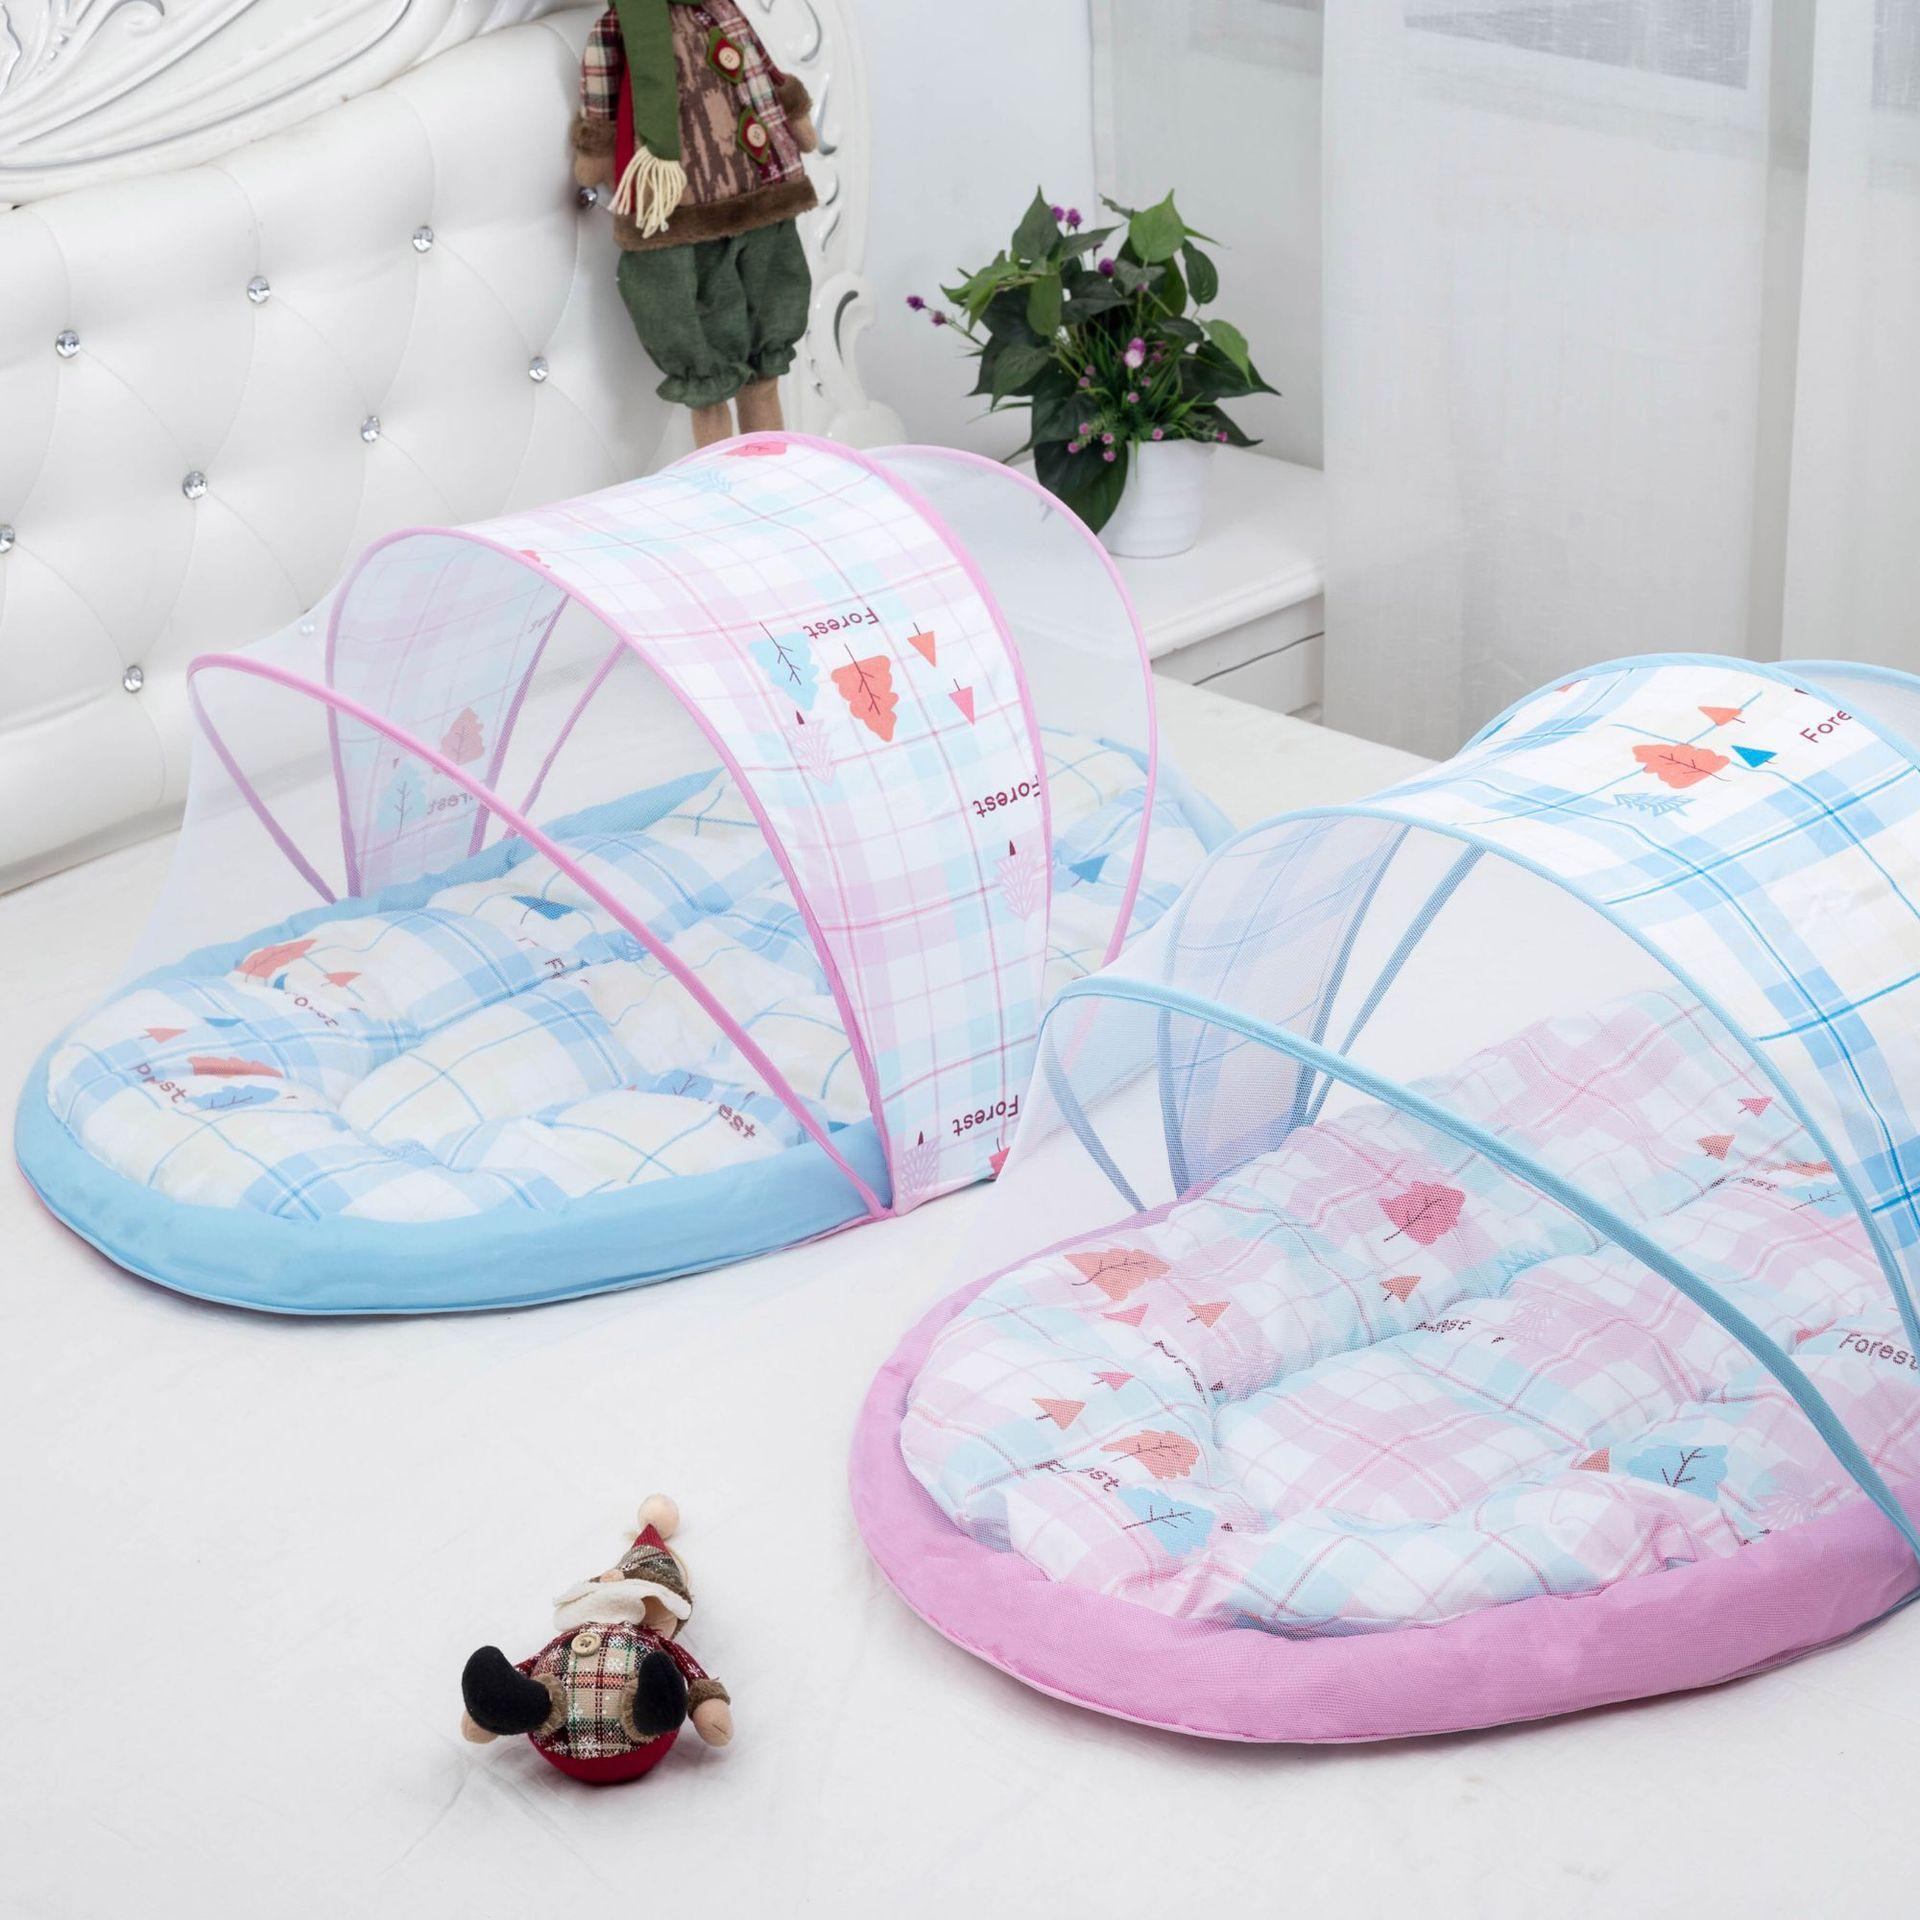 Portable Baby Crib Mosquito Net Tent Multi-Function Infant Foldable Mosquito Netting for ...